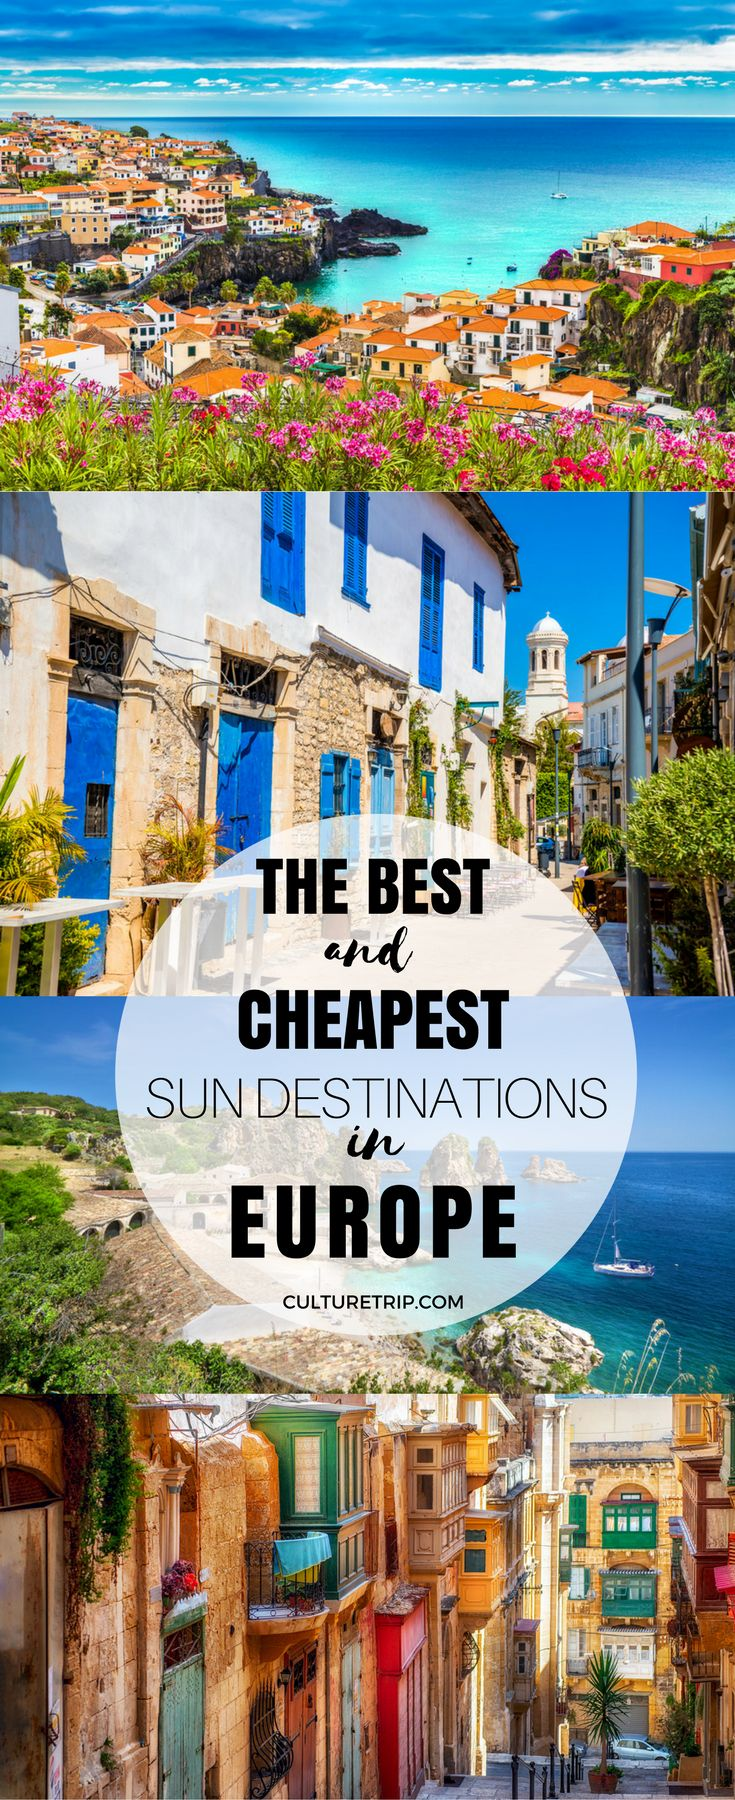 The Best and Cheapest Winter Sun Destinations in Europe|Pinterest: theculturetrip